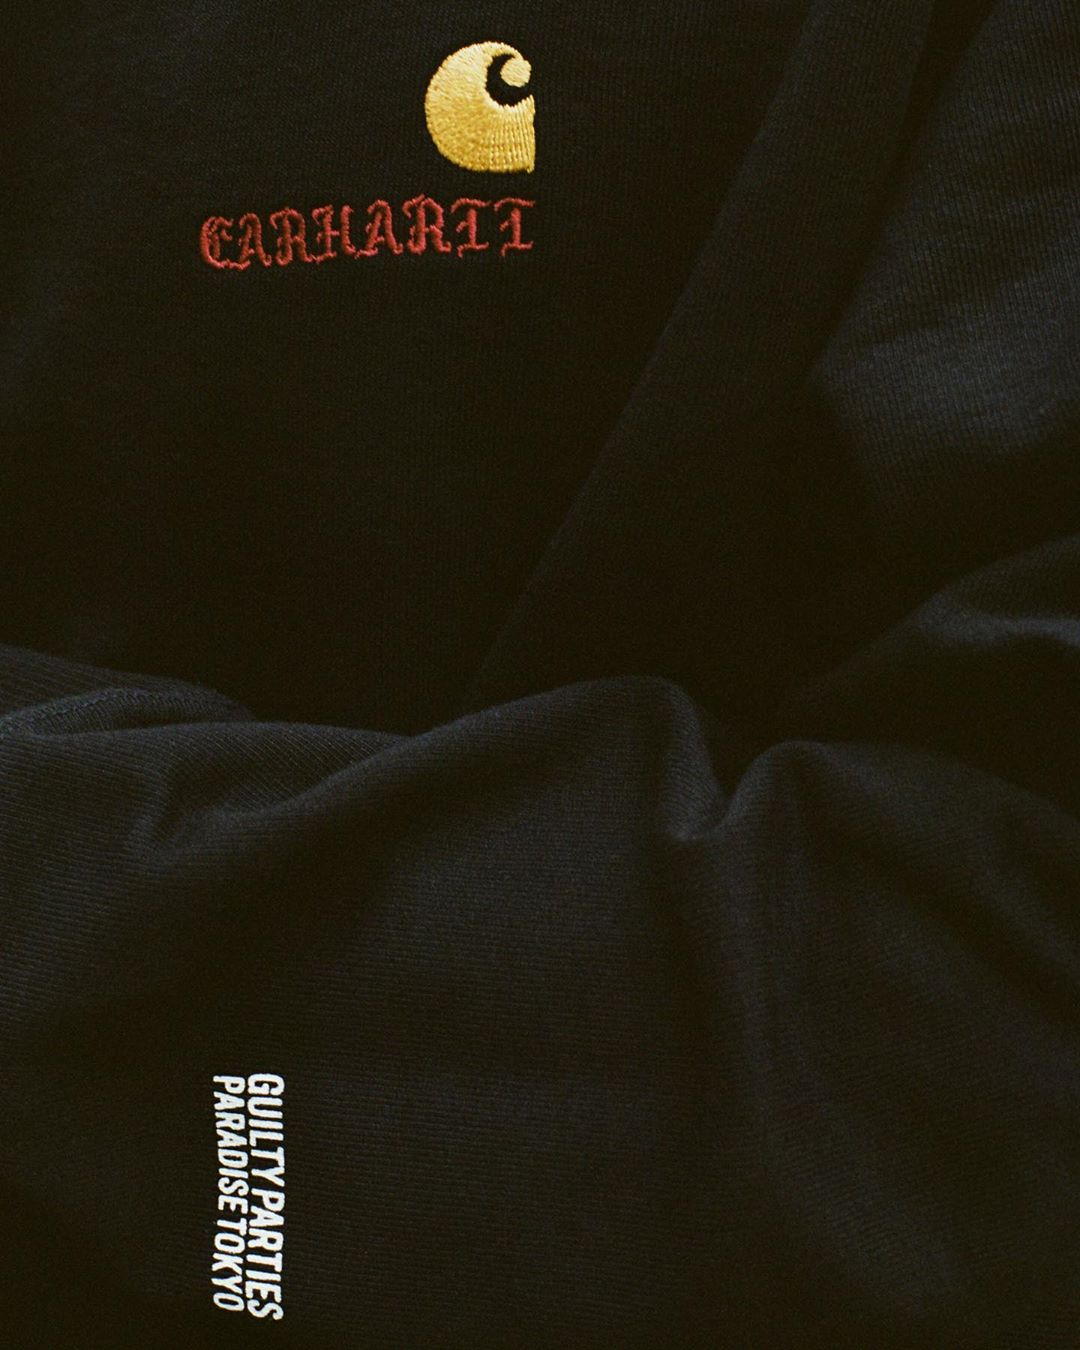 wacko-maria-carhartt-wip-20aw-collaboration-release-20201010